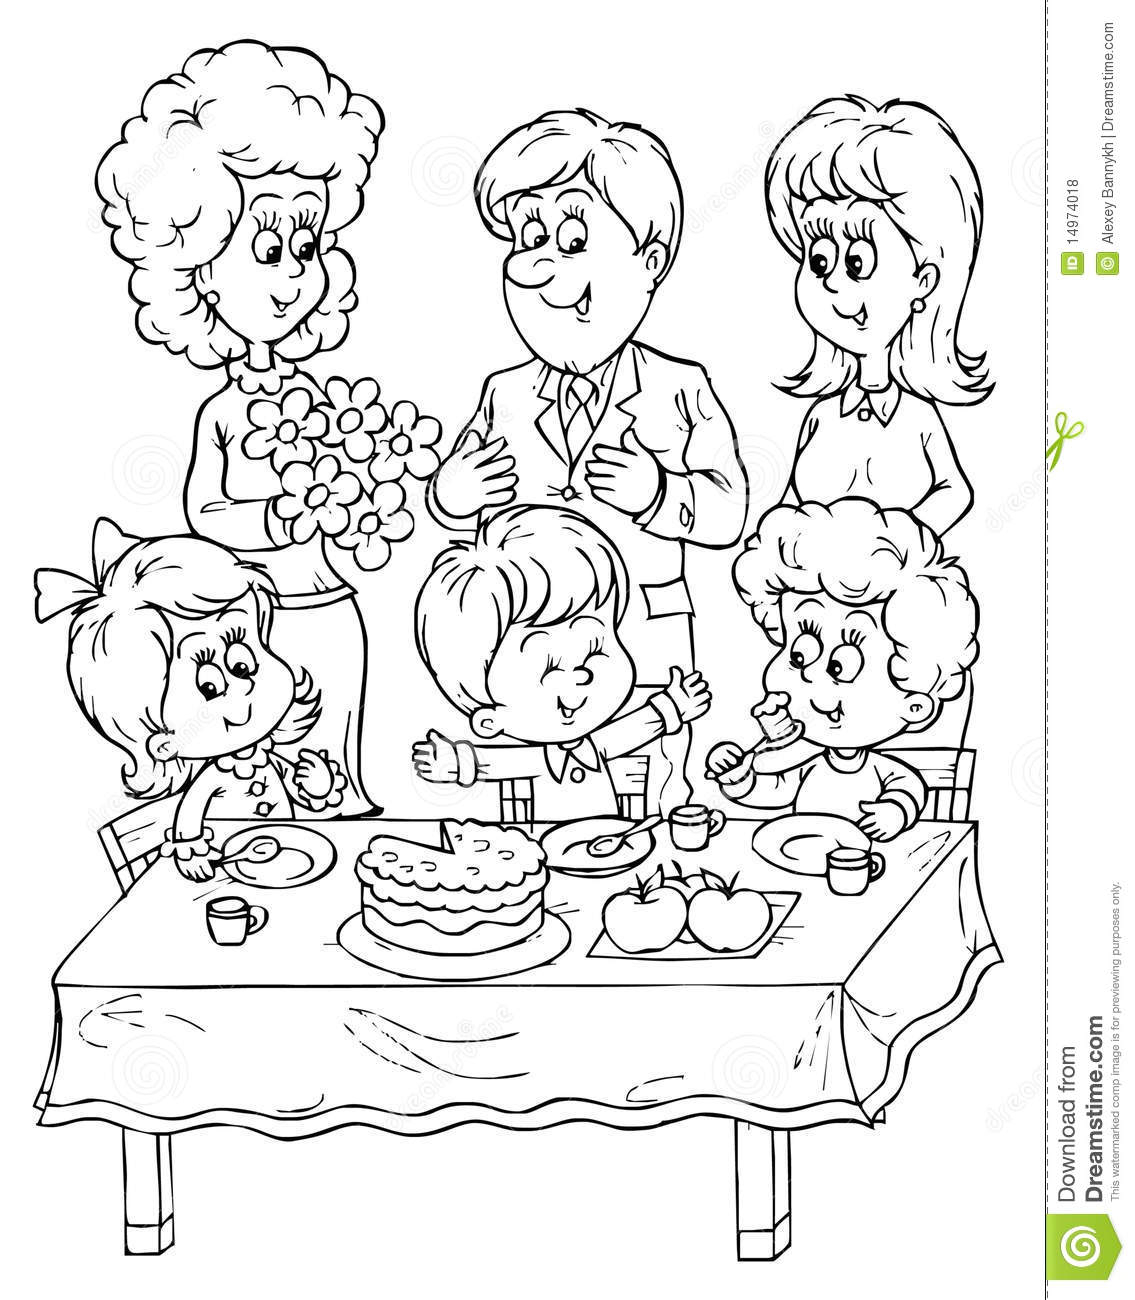 birthday party scene drawing ; drawing-of-birthday-scene-birthday-decorations-to-draw-image-inspiration-of-cake-and